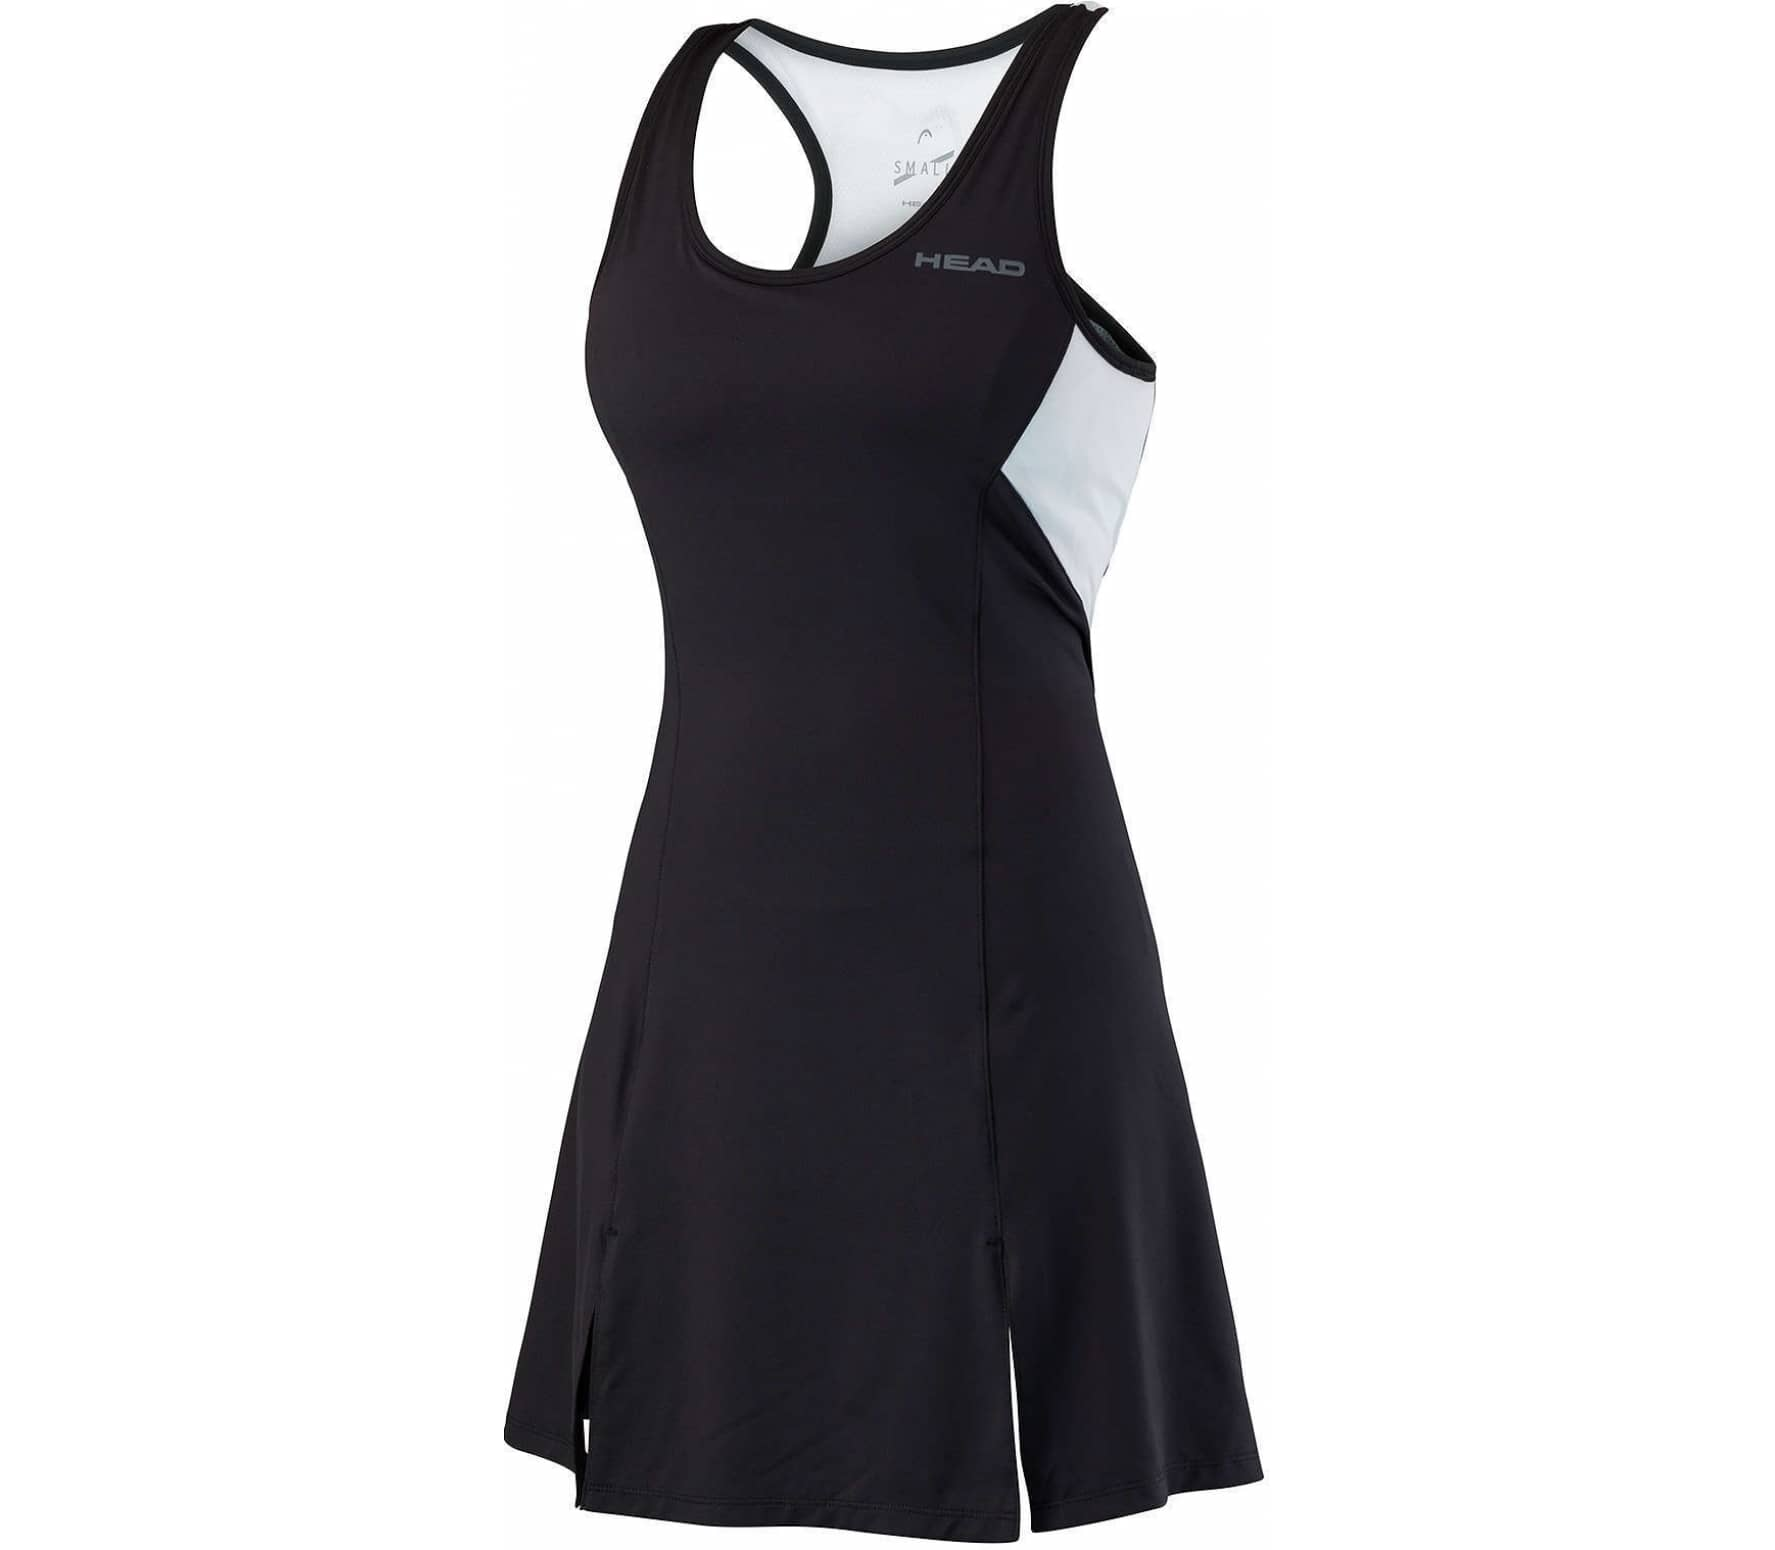 f1faea7be528 Head - Club Donna vestito Tennis (nero) compra online su Keller Sports